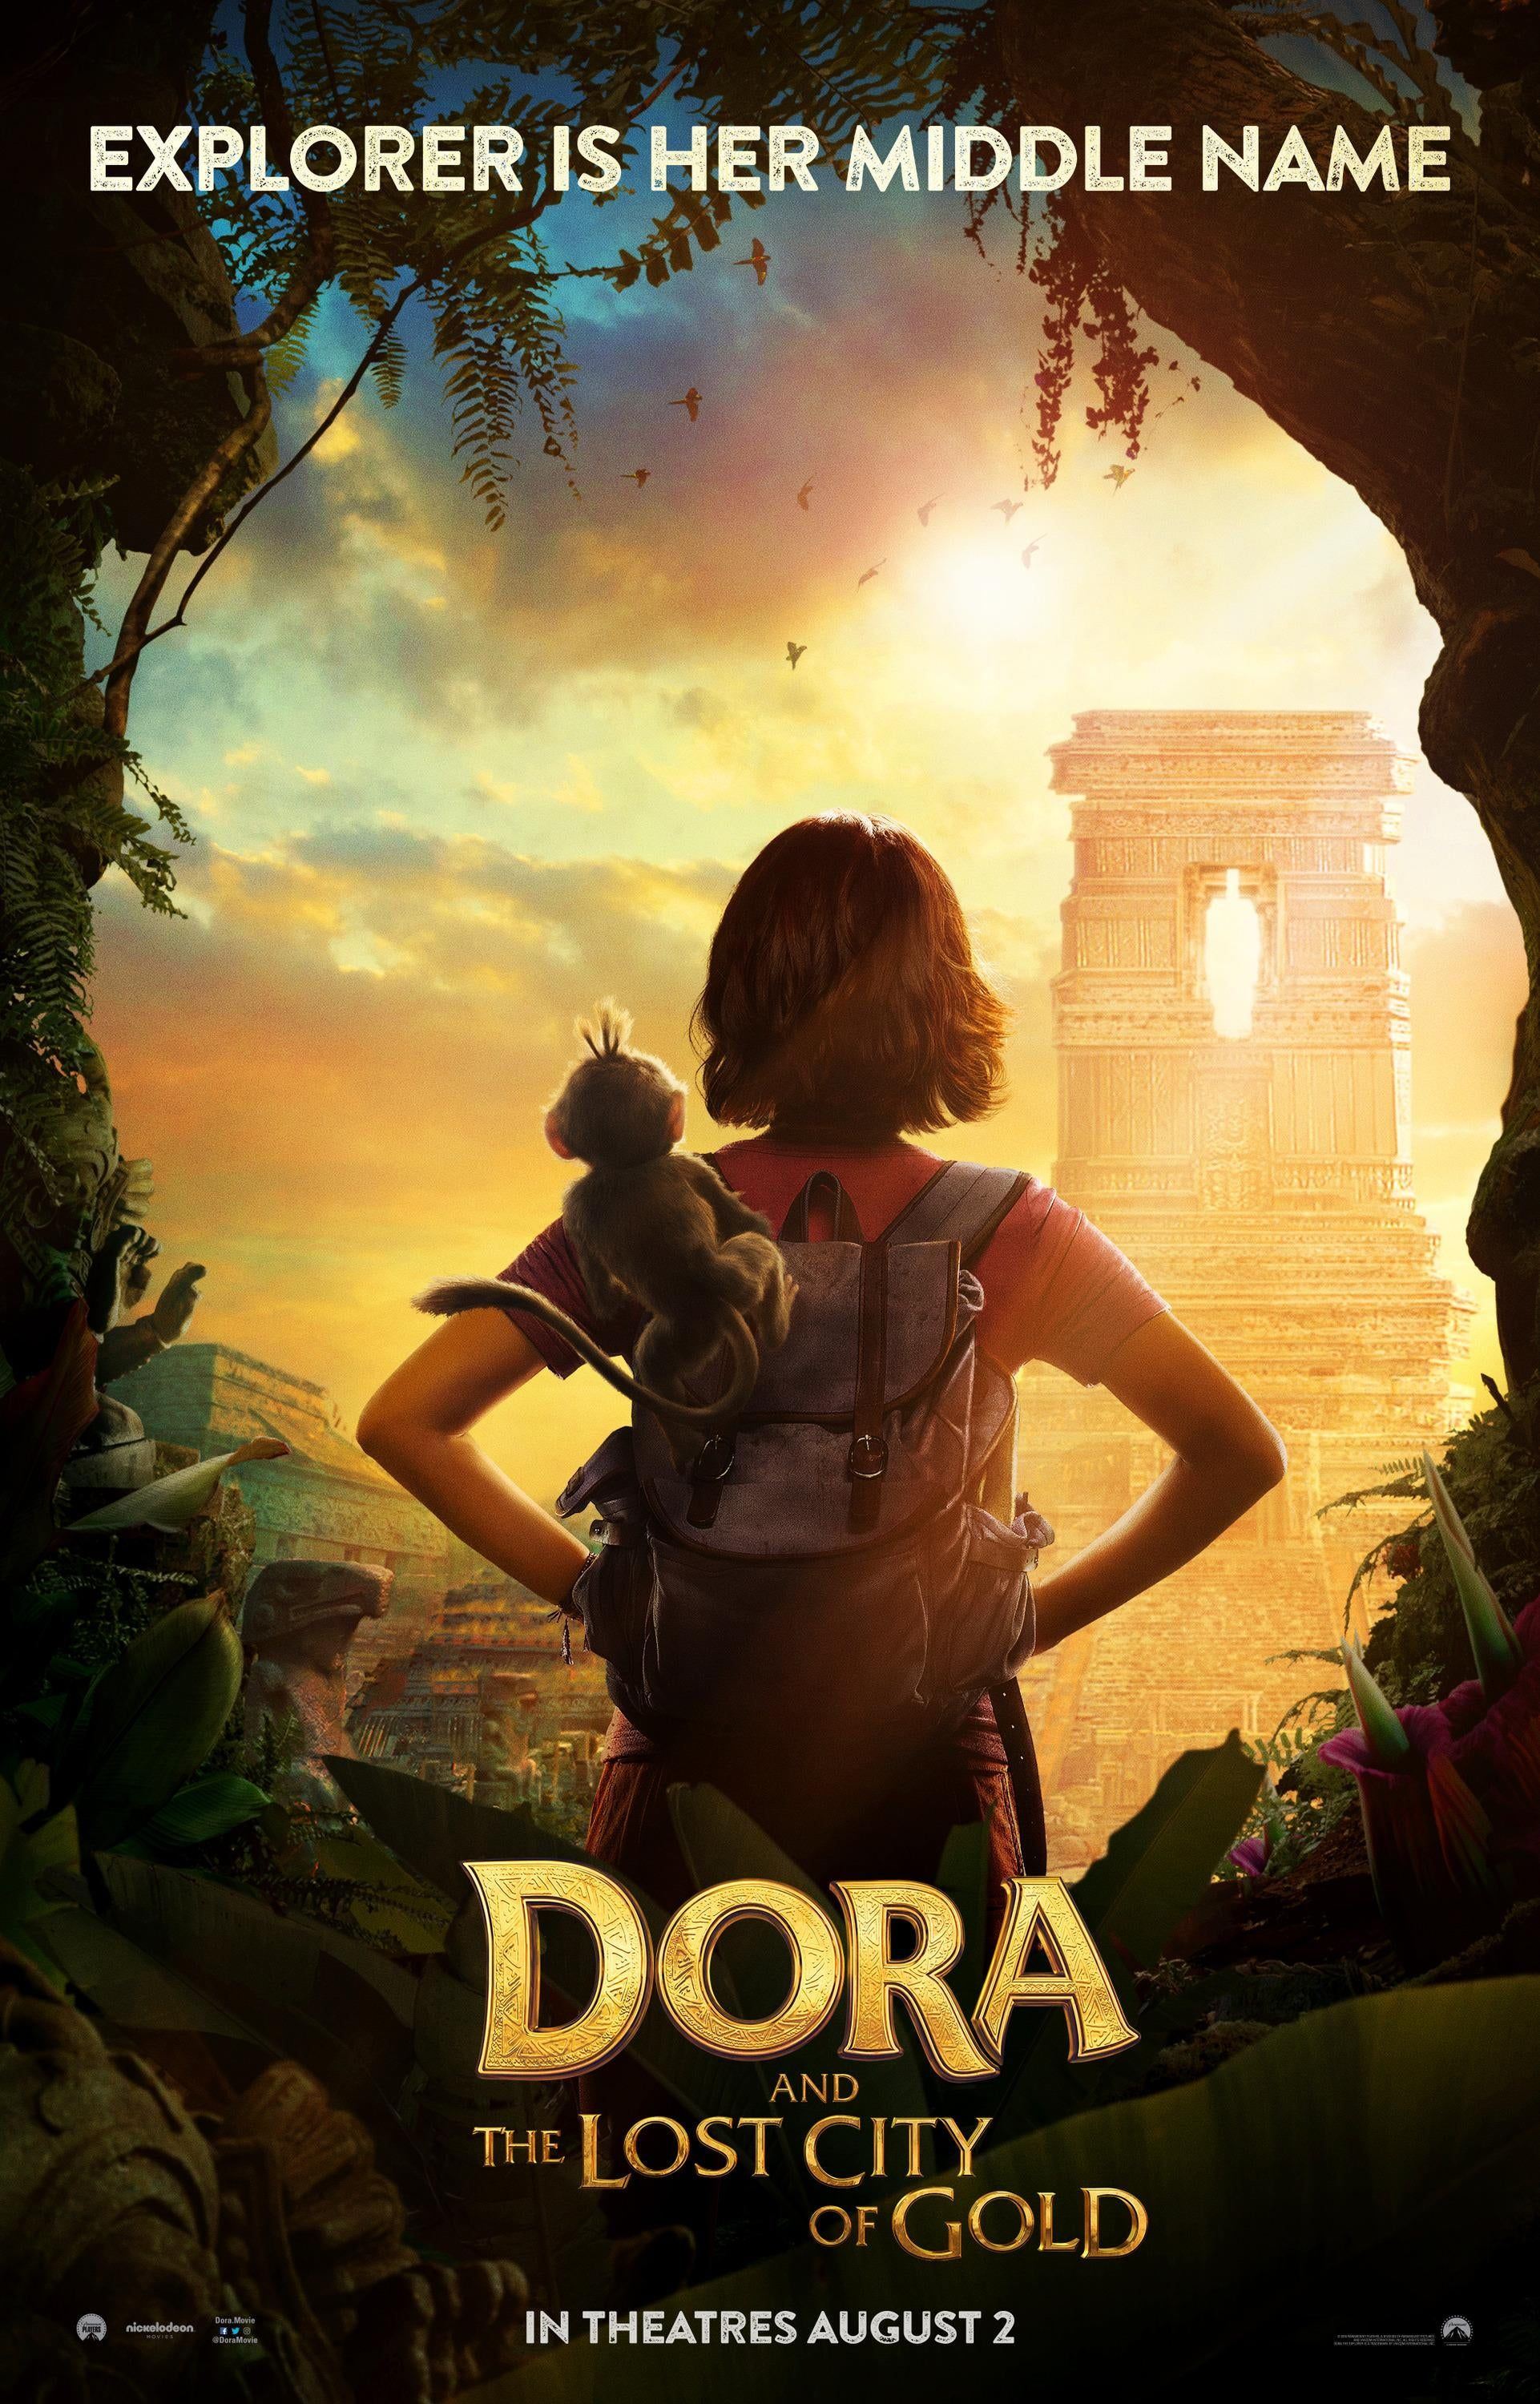 Mistake Throughout The Movie Dora And The Lost City Of Gold Everyone Mistakenly Calls The Main Character Dora From Th Lost City Of Gold Lost City Gold Movie